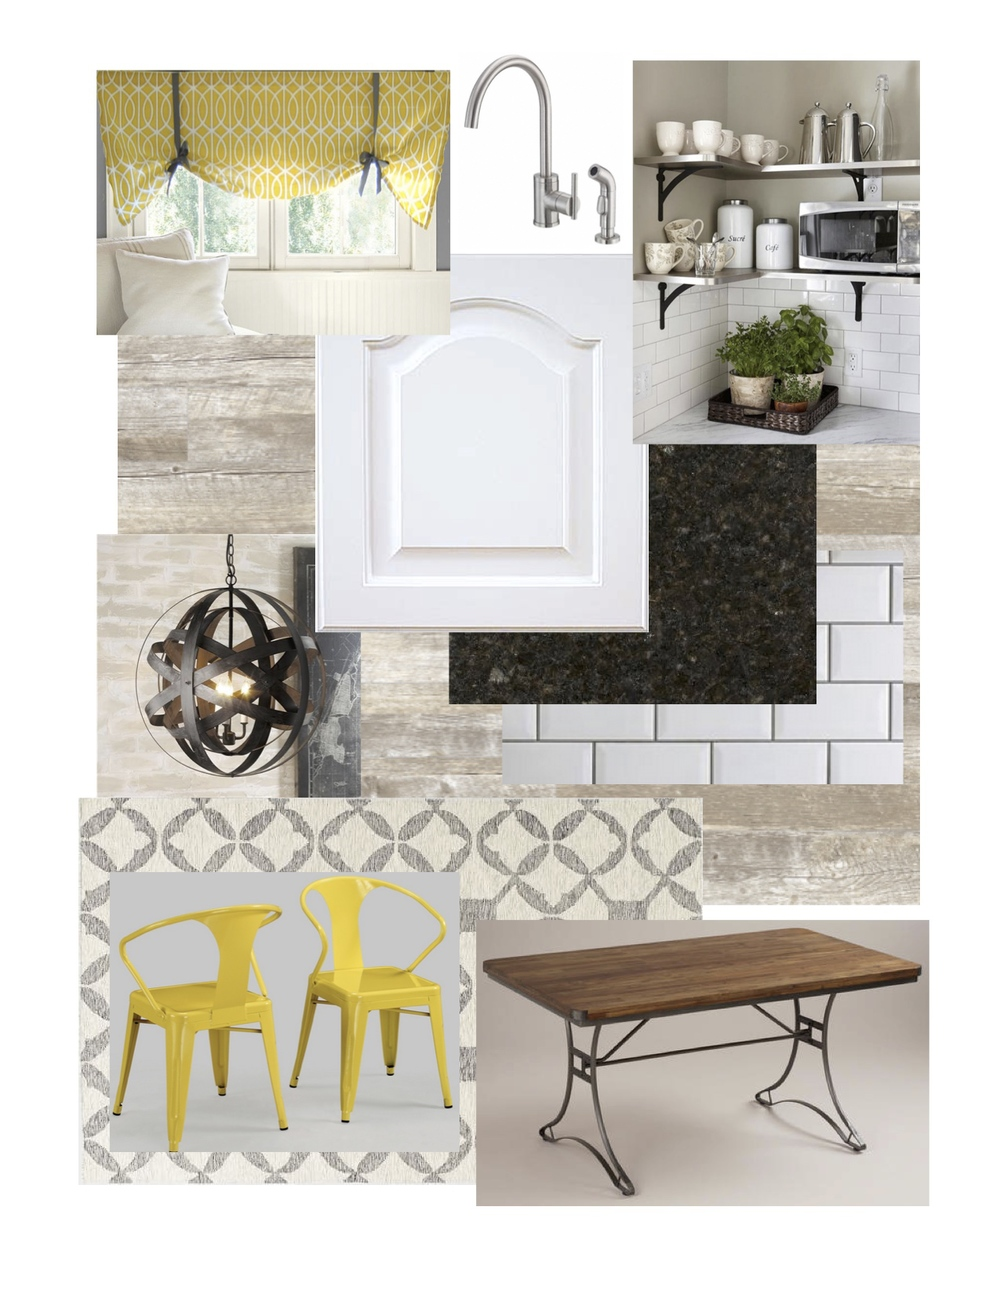 Kitchen redesign a rustic modern kitchen dwelling studio for Rustic yellow kitchen